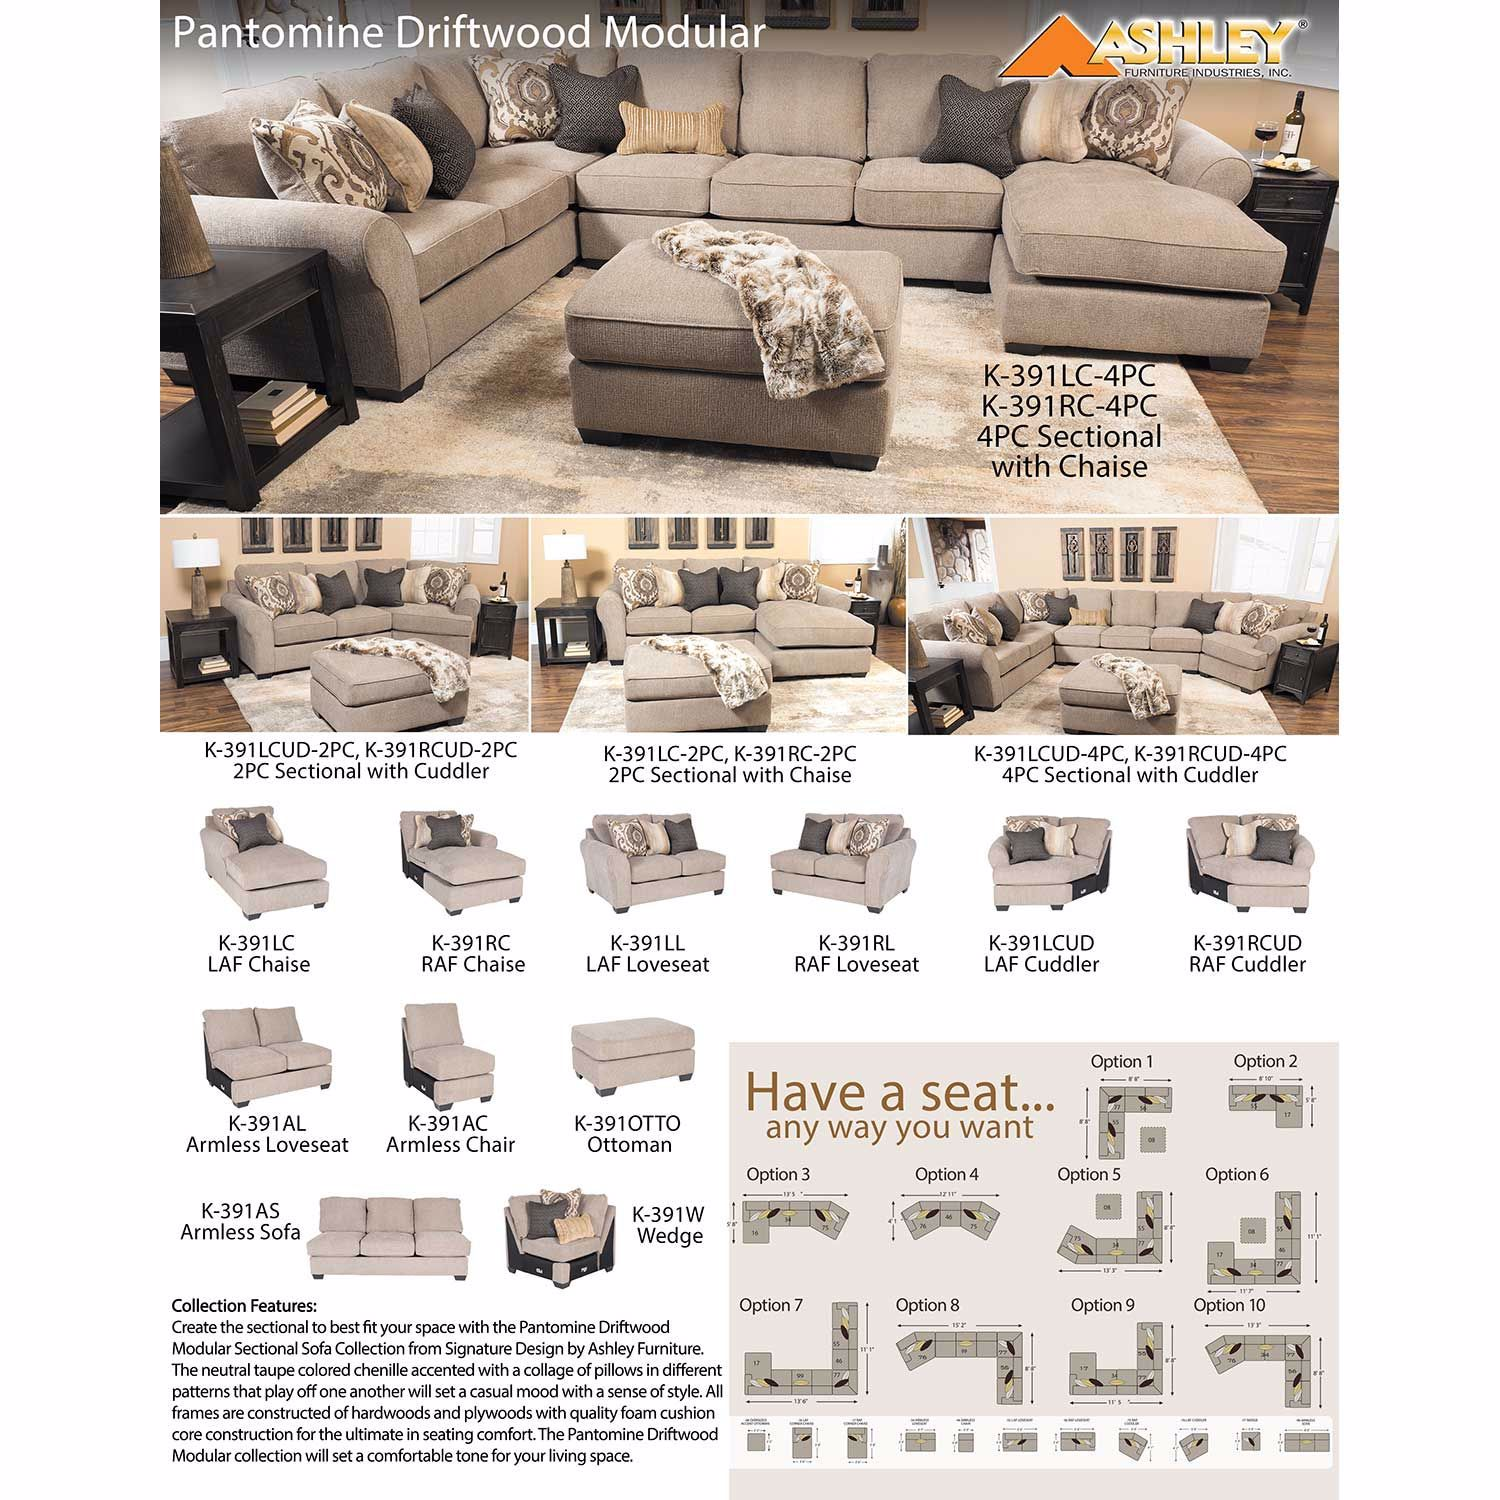 Pantomine 4 Piece Sectional with RAF Cuddler